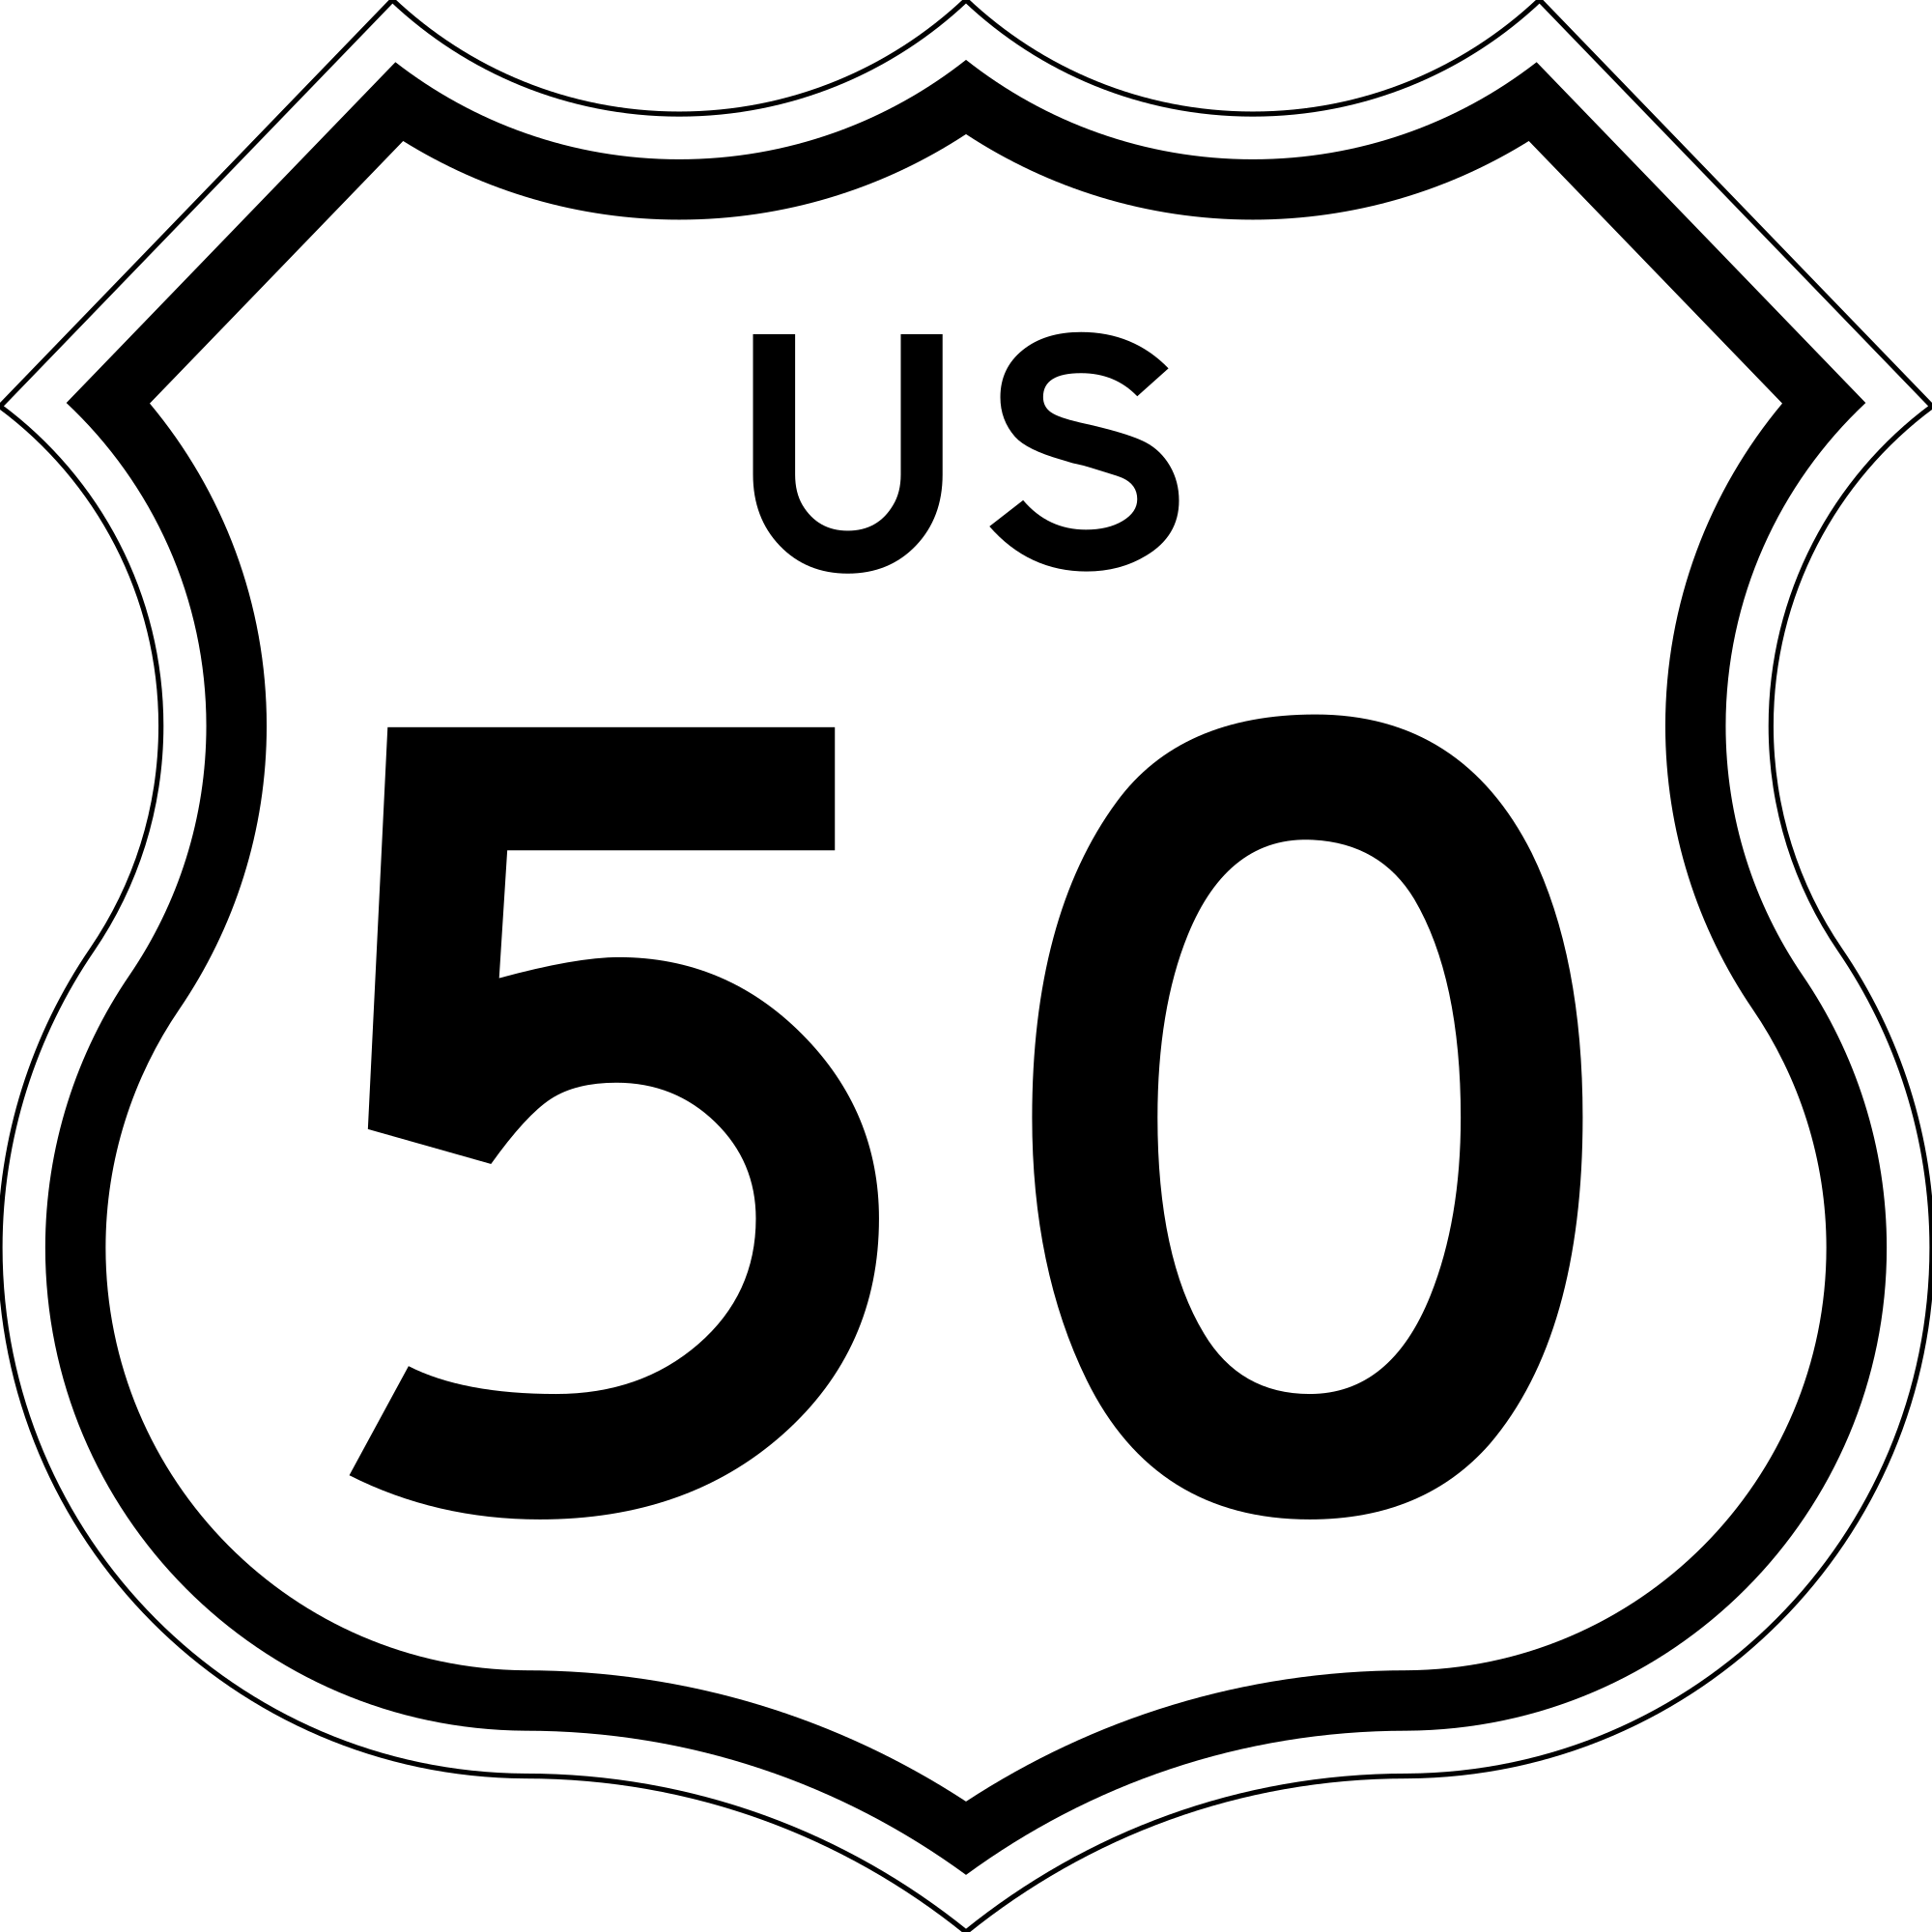 United states clipart 50 state. File us cutout svg